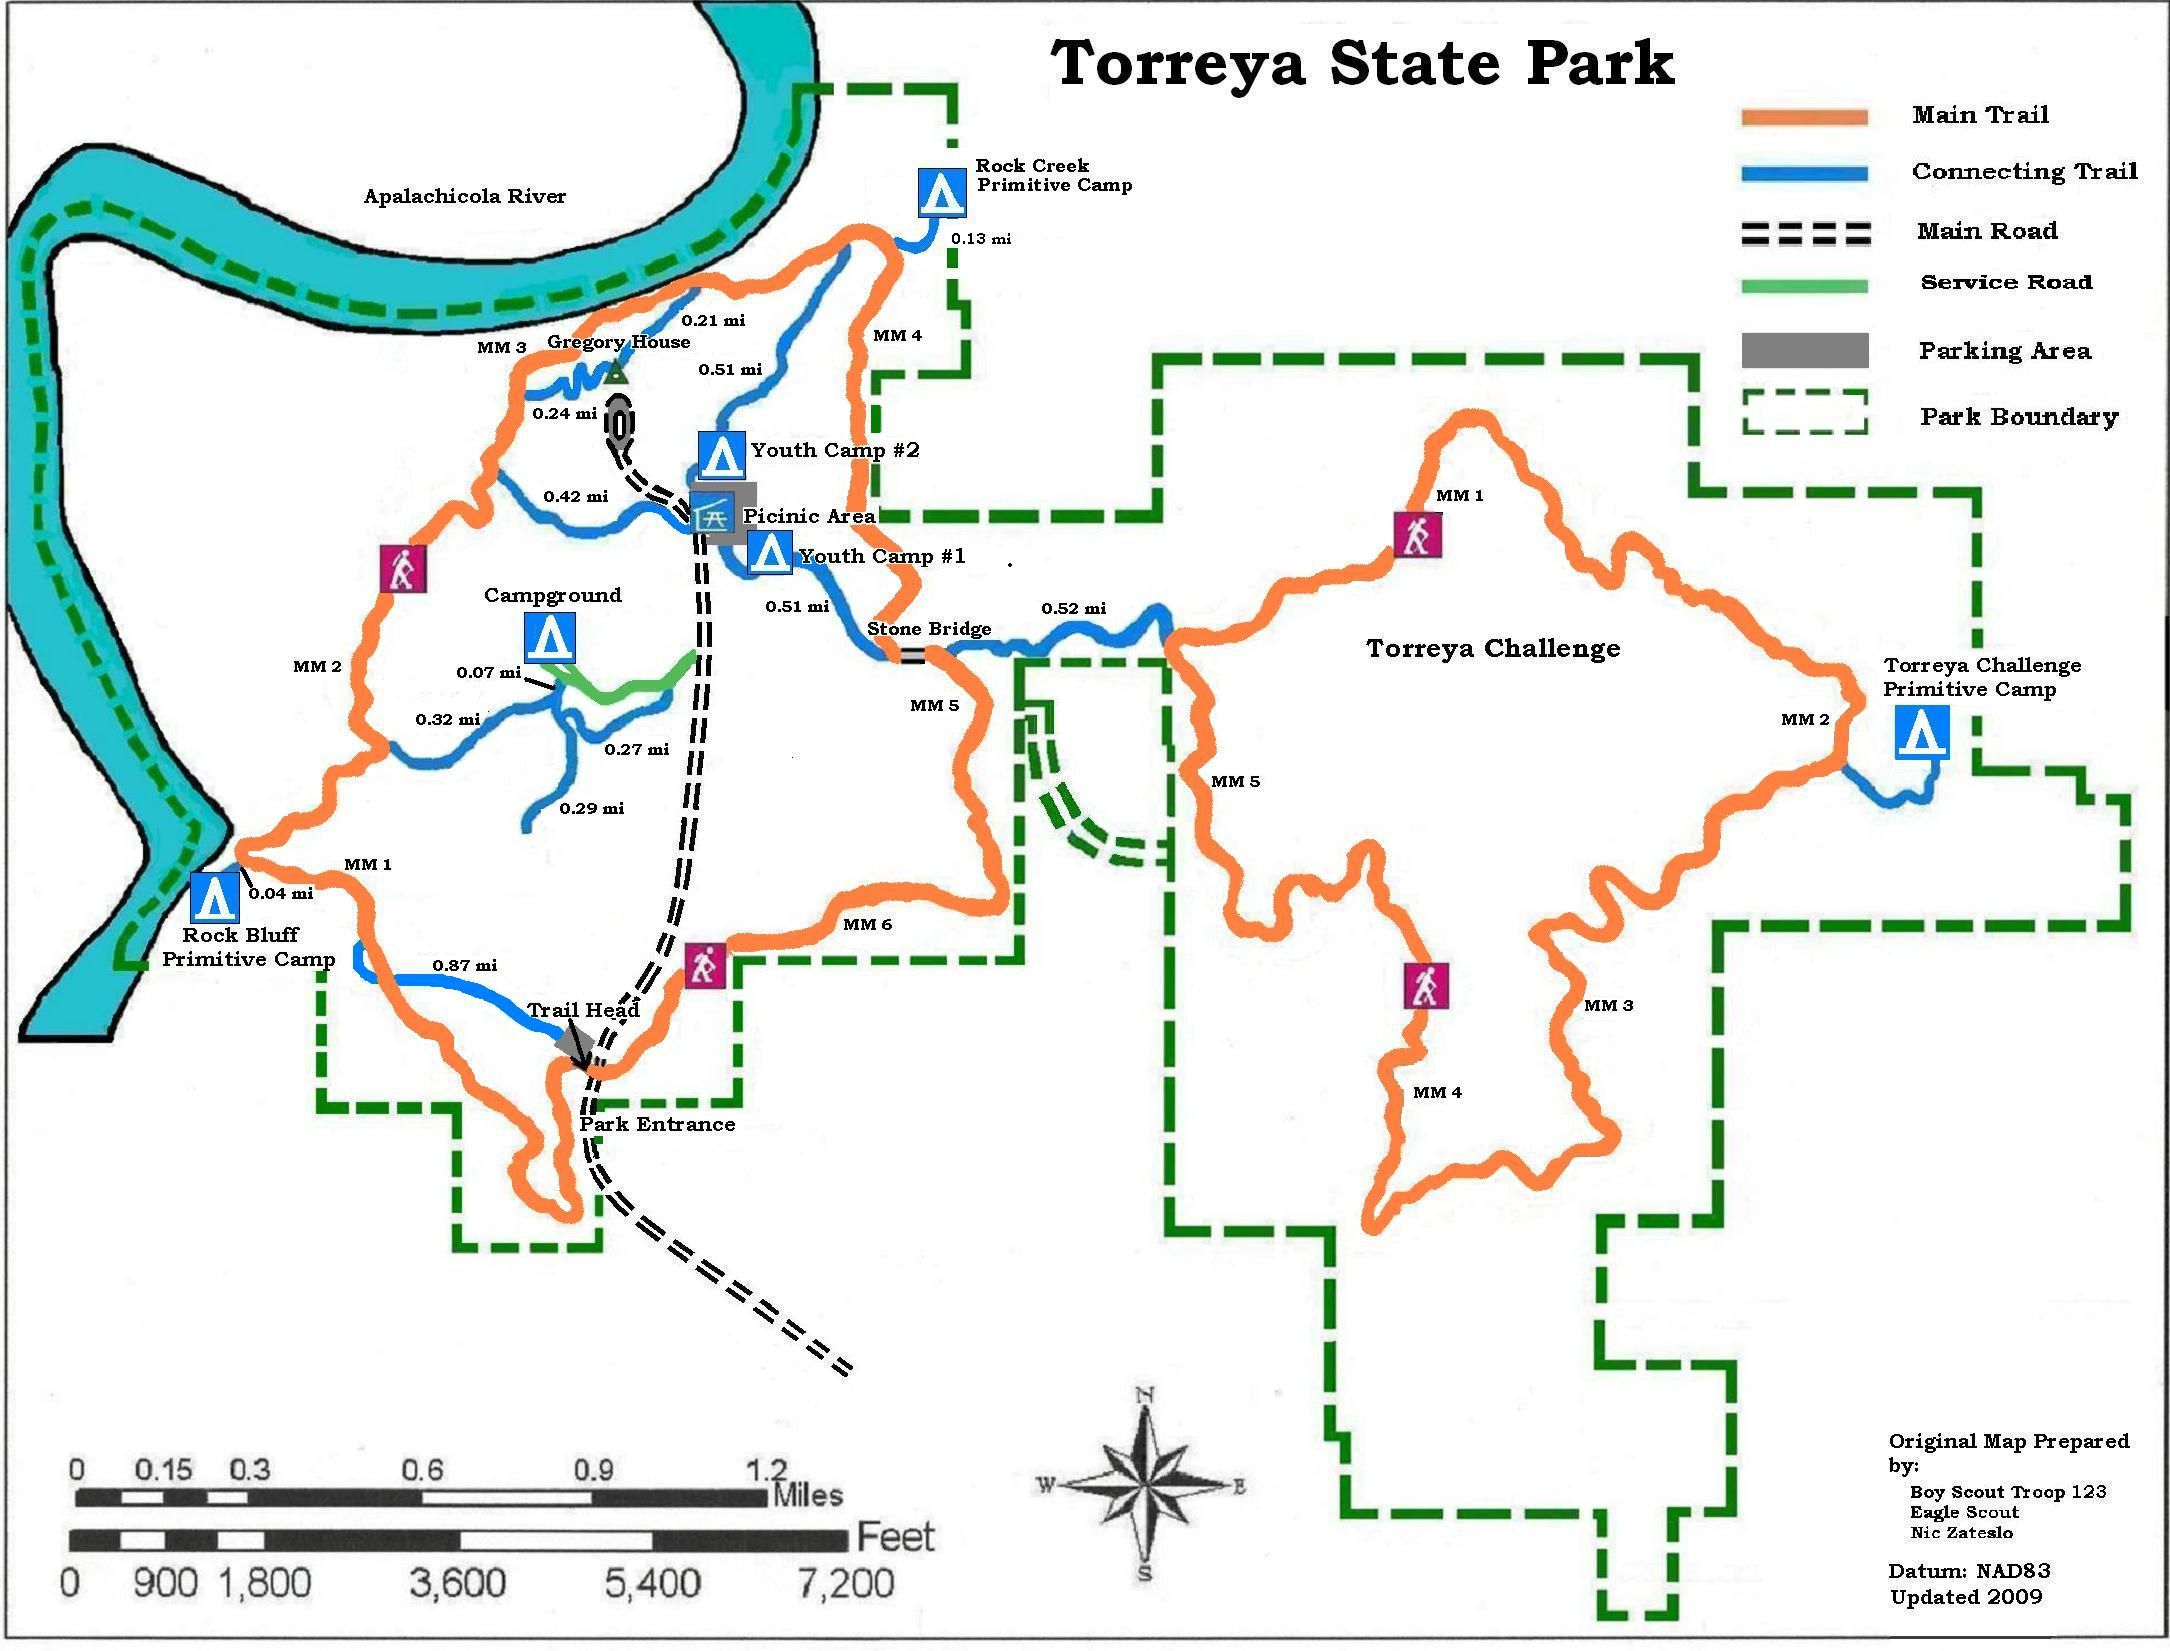 Apalachicola National Forest Campgrounds | Map Of Torreya State Park - Camping In Florida State Parks Map